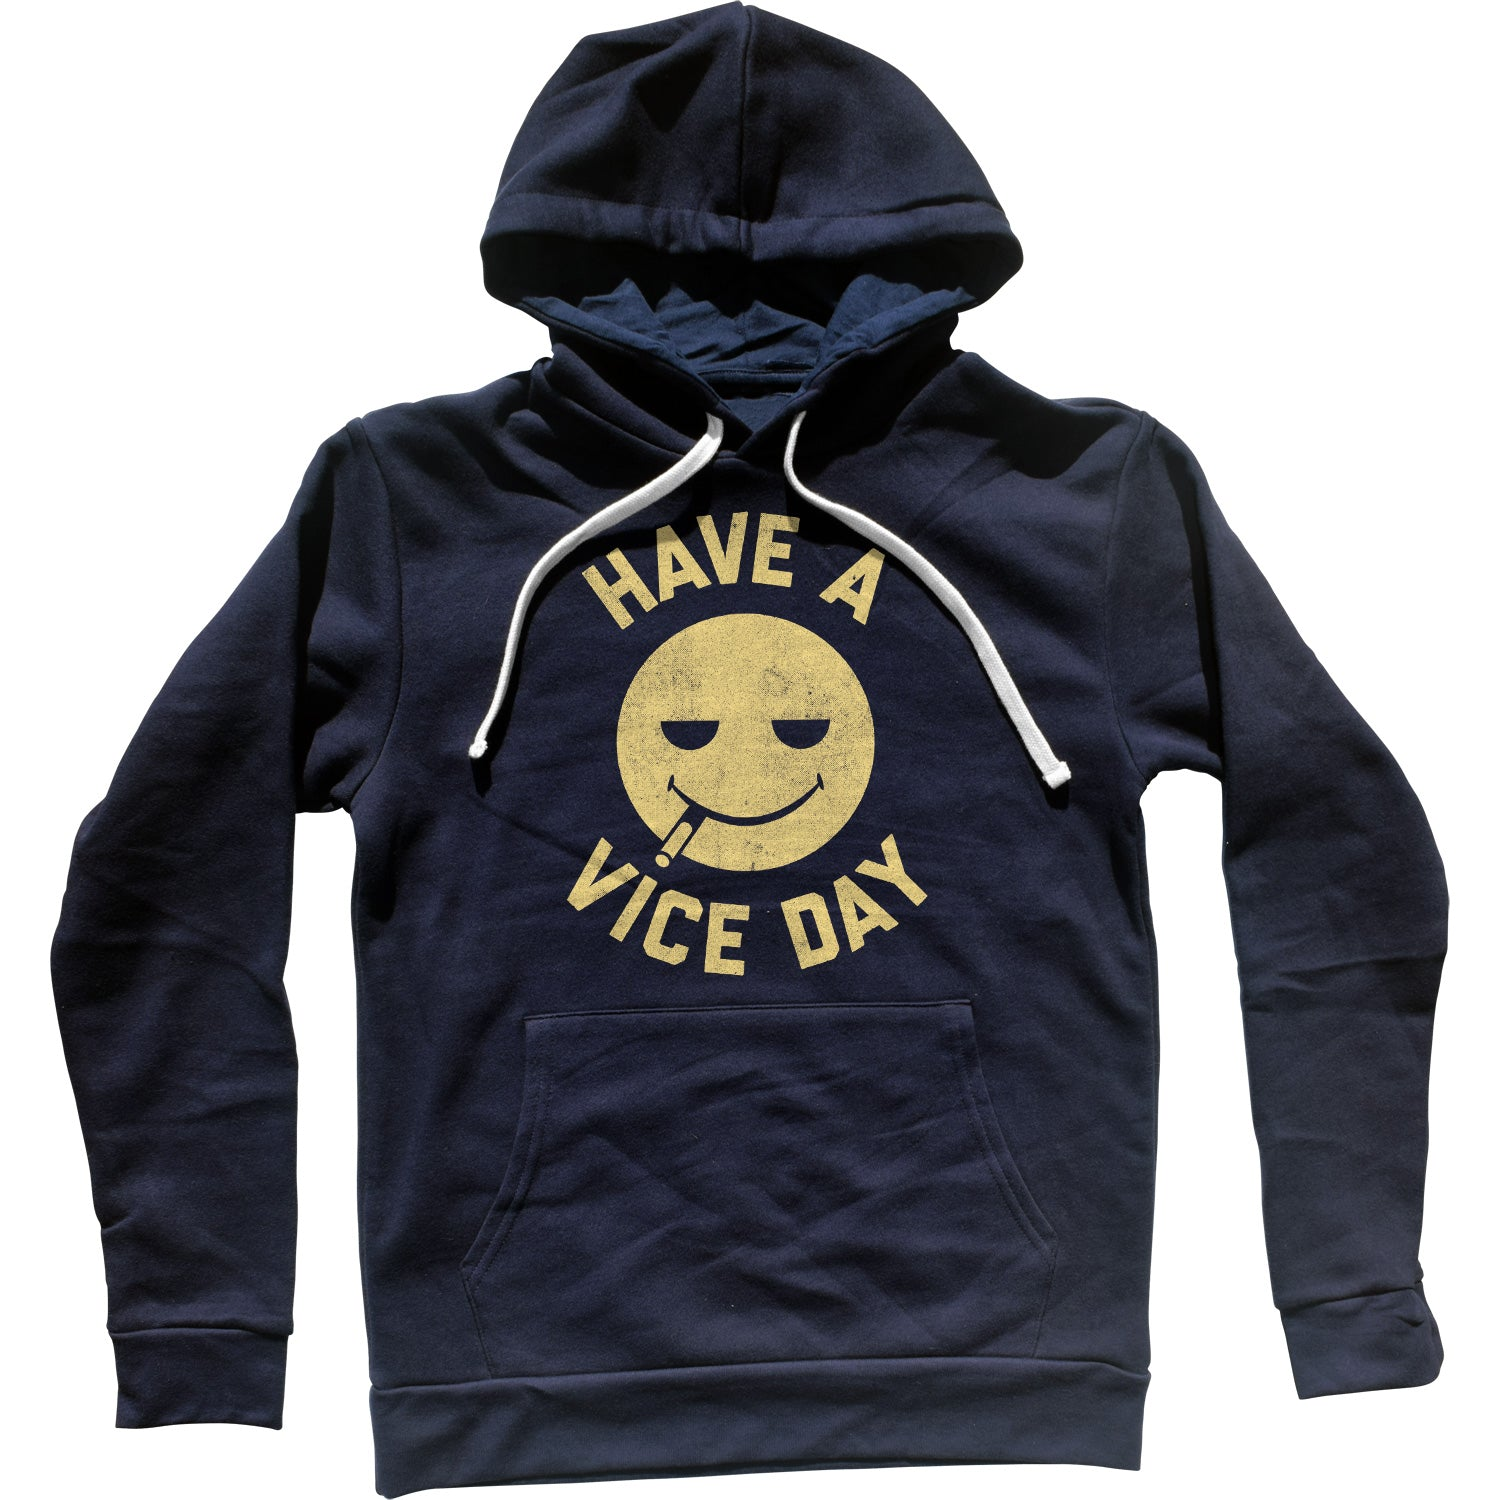 Have a Vice Day Unisex Hoodie